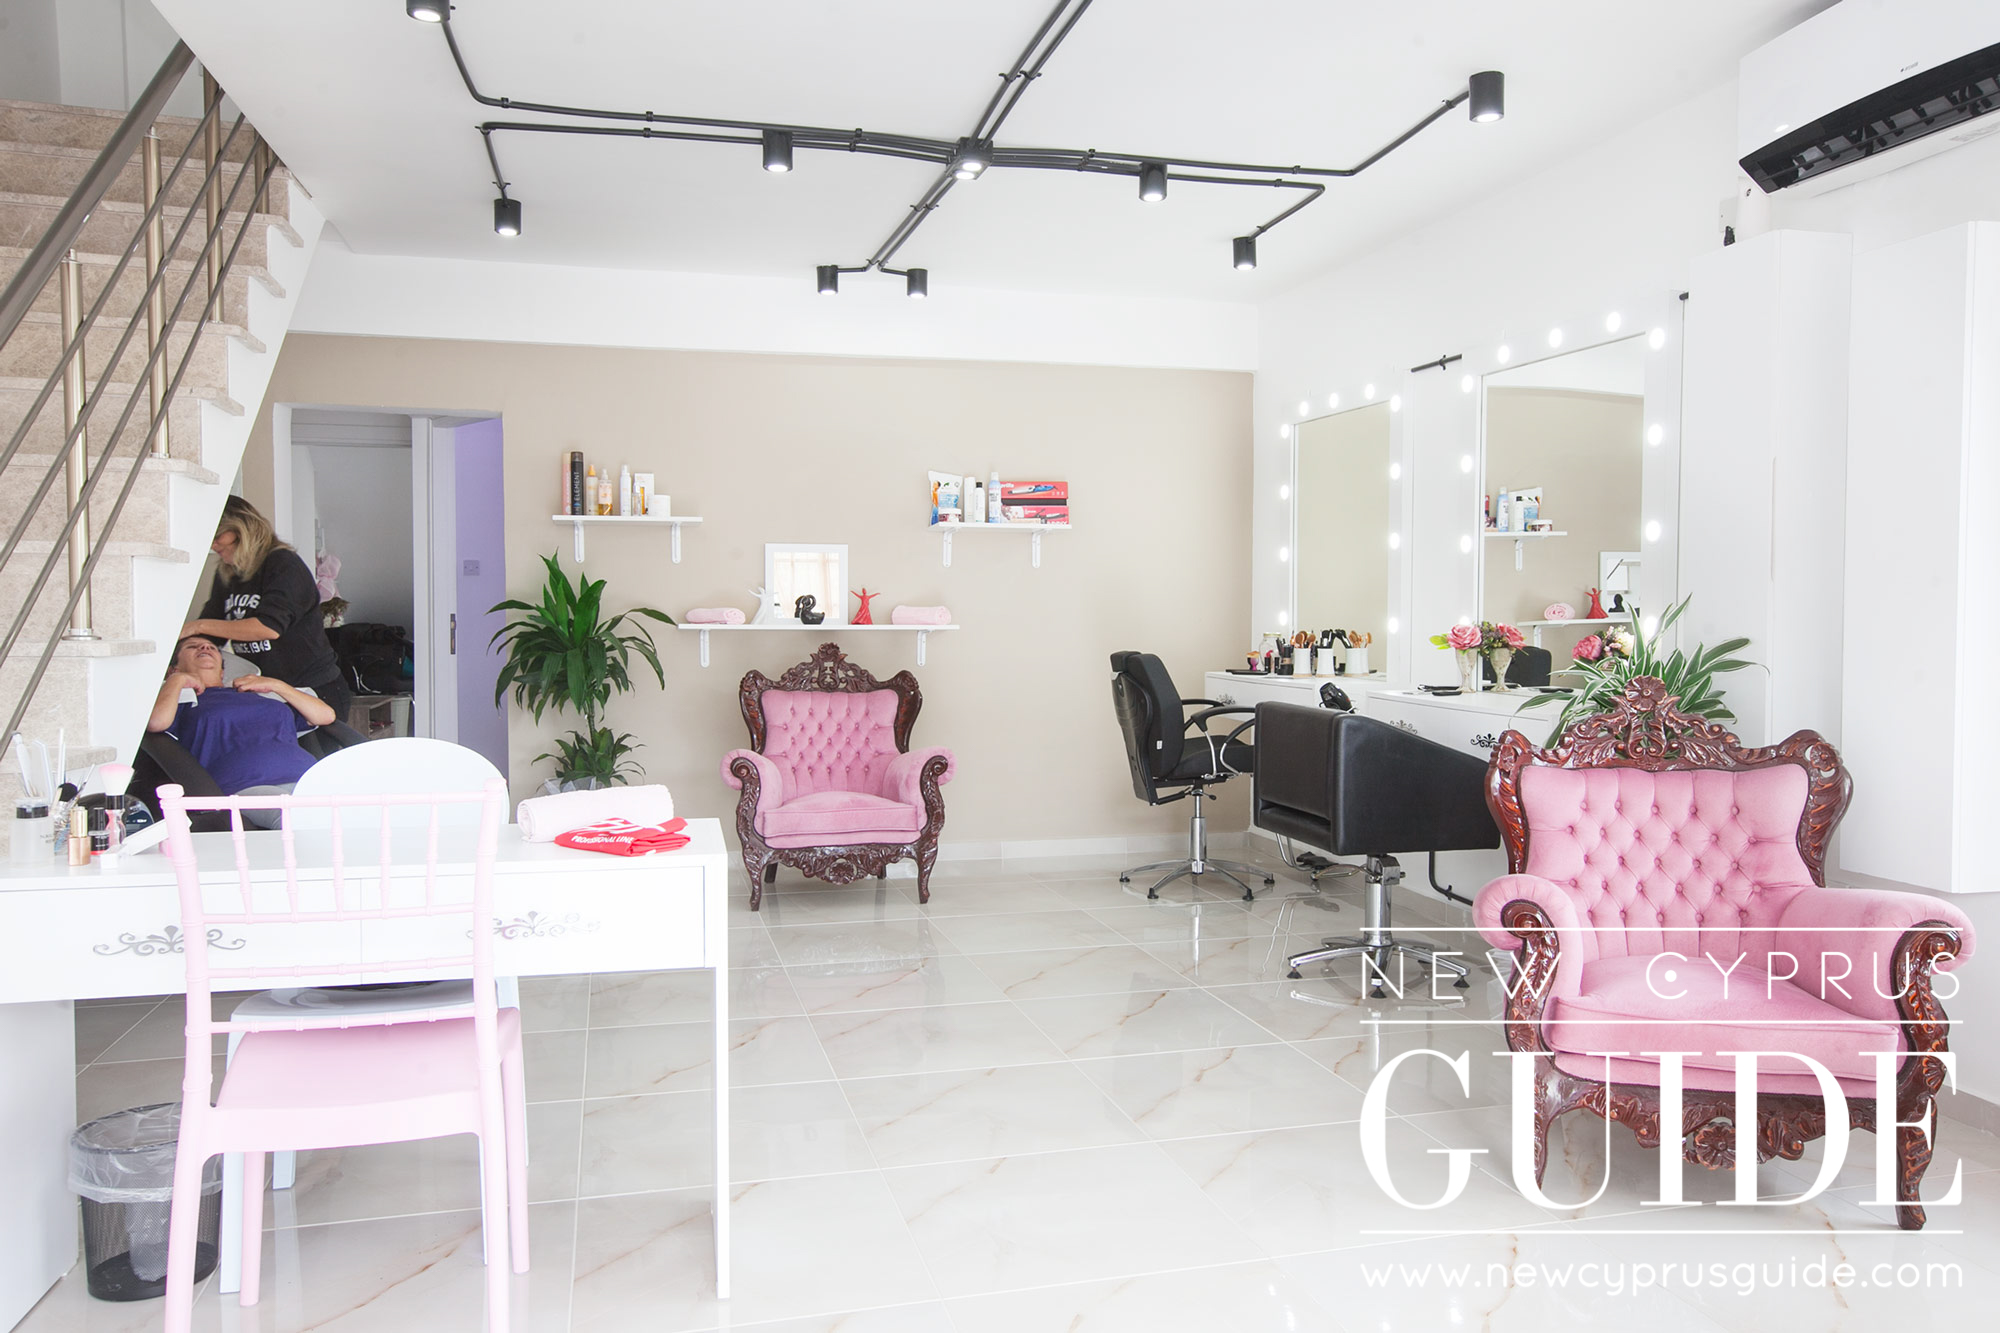 Black Amp Pink Luxury Beauty Salon New Cyprus Guide